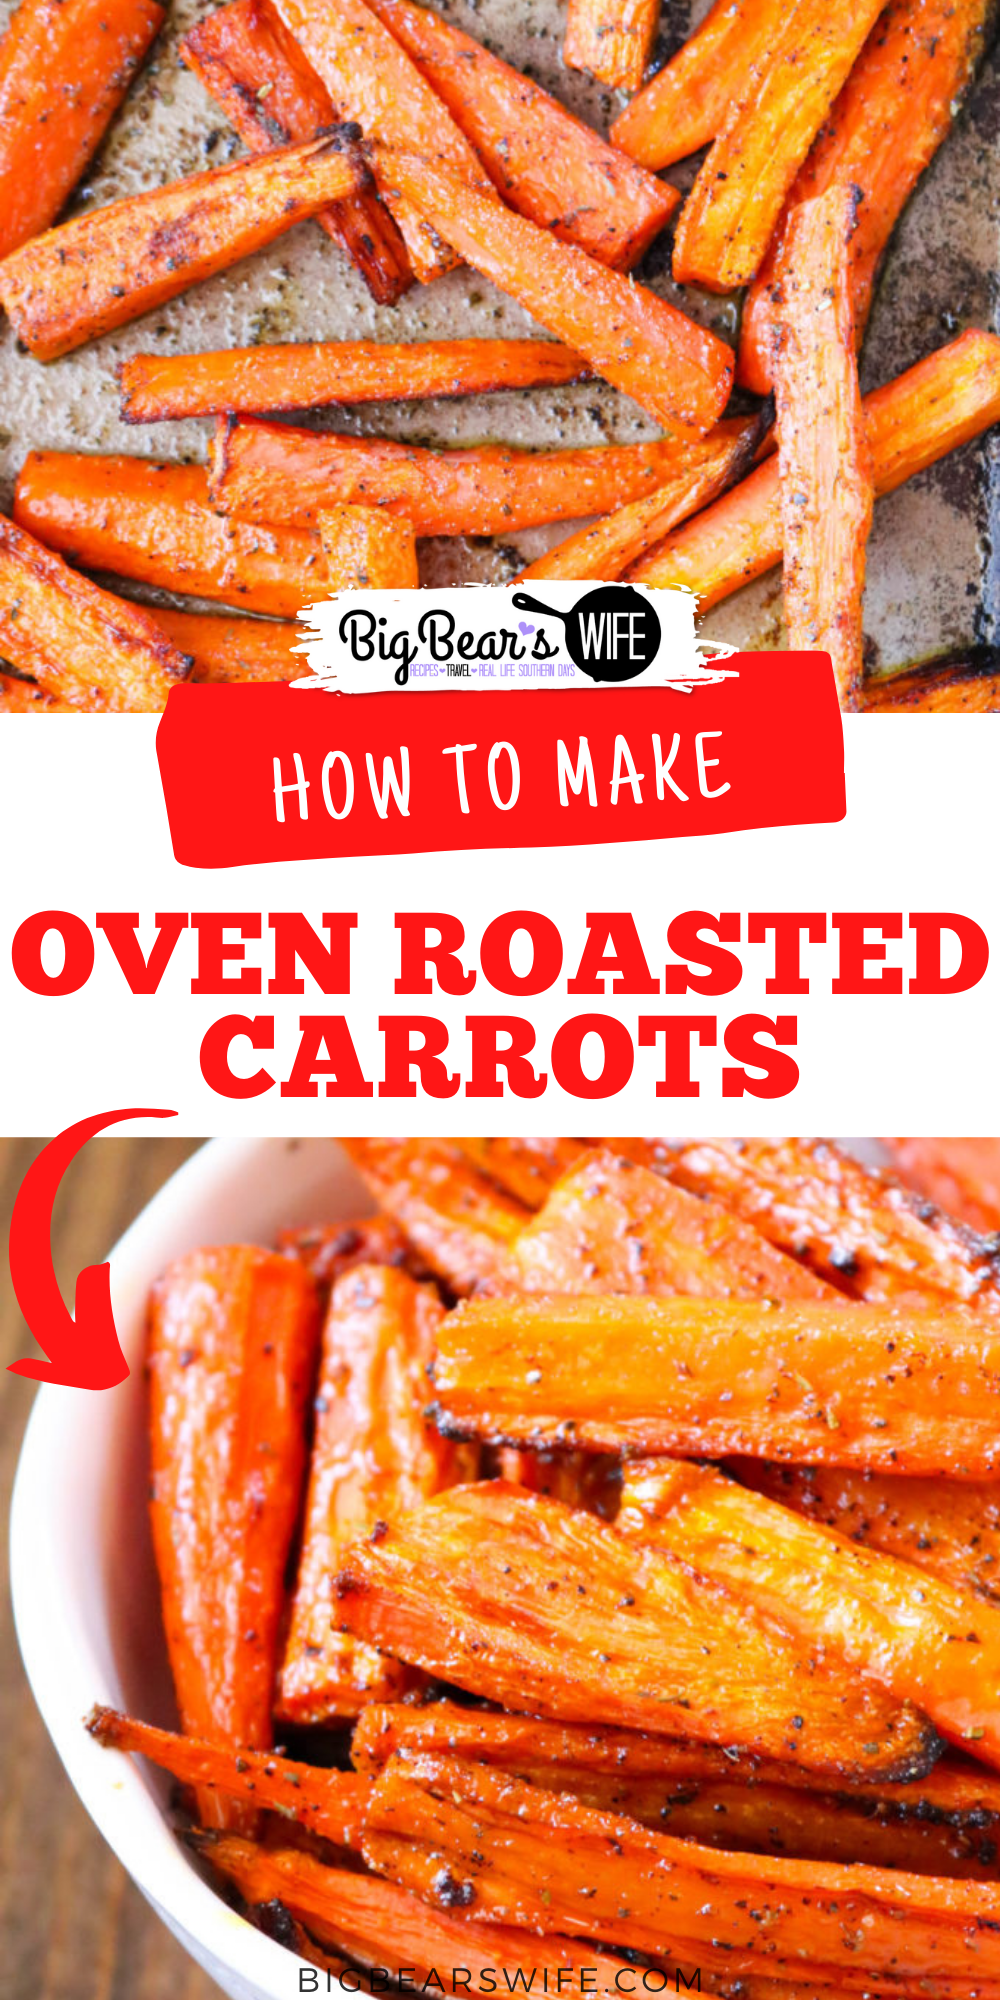 Oven Roasted Carrots make a great side dish that pairs perfect with almost any main course! These cooked carrots are oven roasted with a few seasonings and can be customized to use your favorites from the spice drawer! Ready in under 45 minutes and perfect for weeknights, weekends and meal prep!  via @bigbearswife